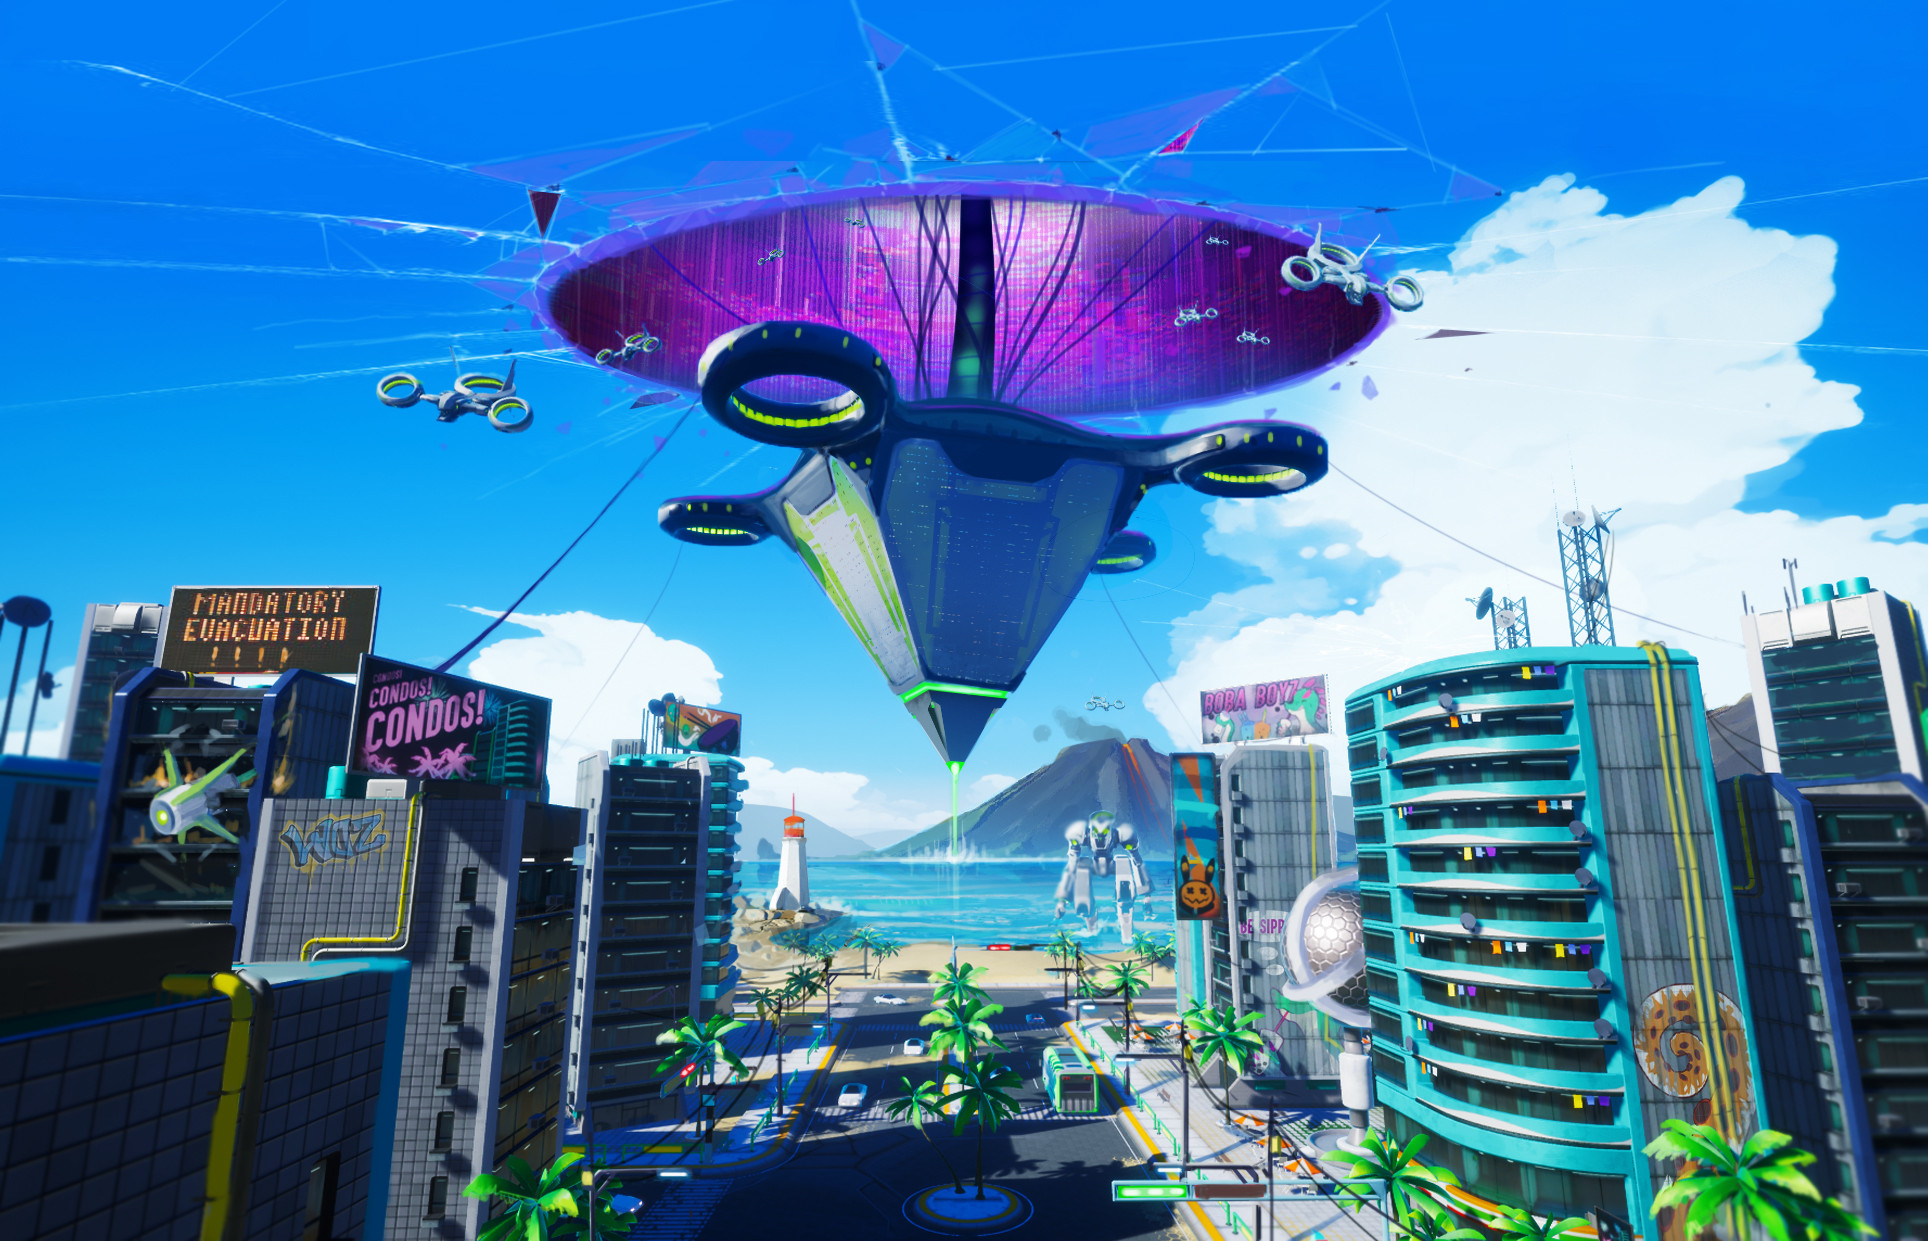 A giant evil space ship from another dimension looms above the city. What will you do to save the city!?